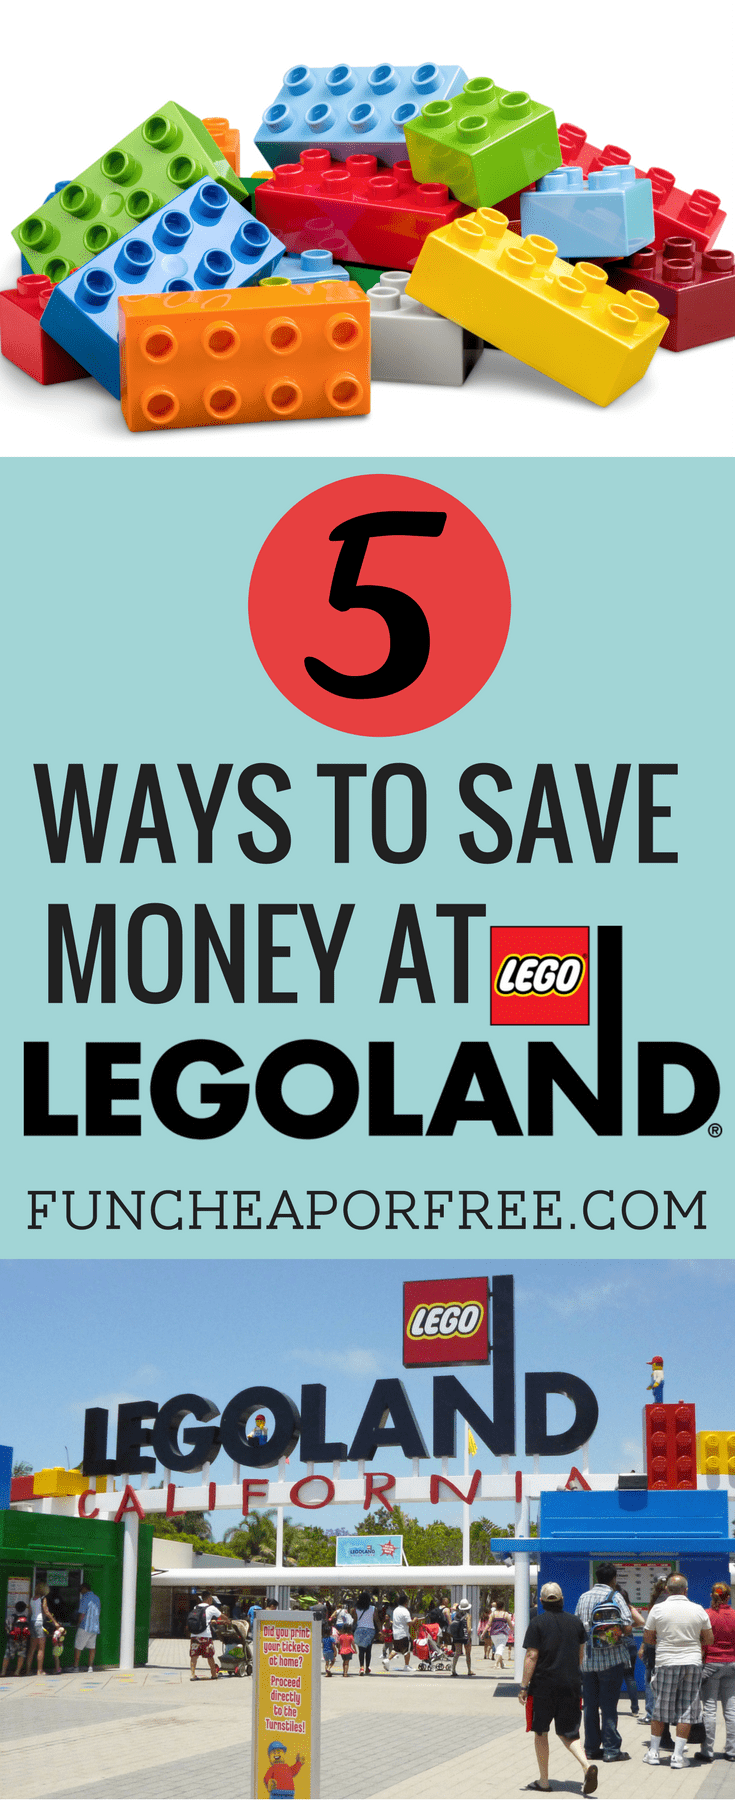 5 tips to save you money at Legoland! Visiting the theme park doesn't have to be expensive - see how we visit without breaking the bank! www.FunCheapOrFree.com